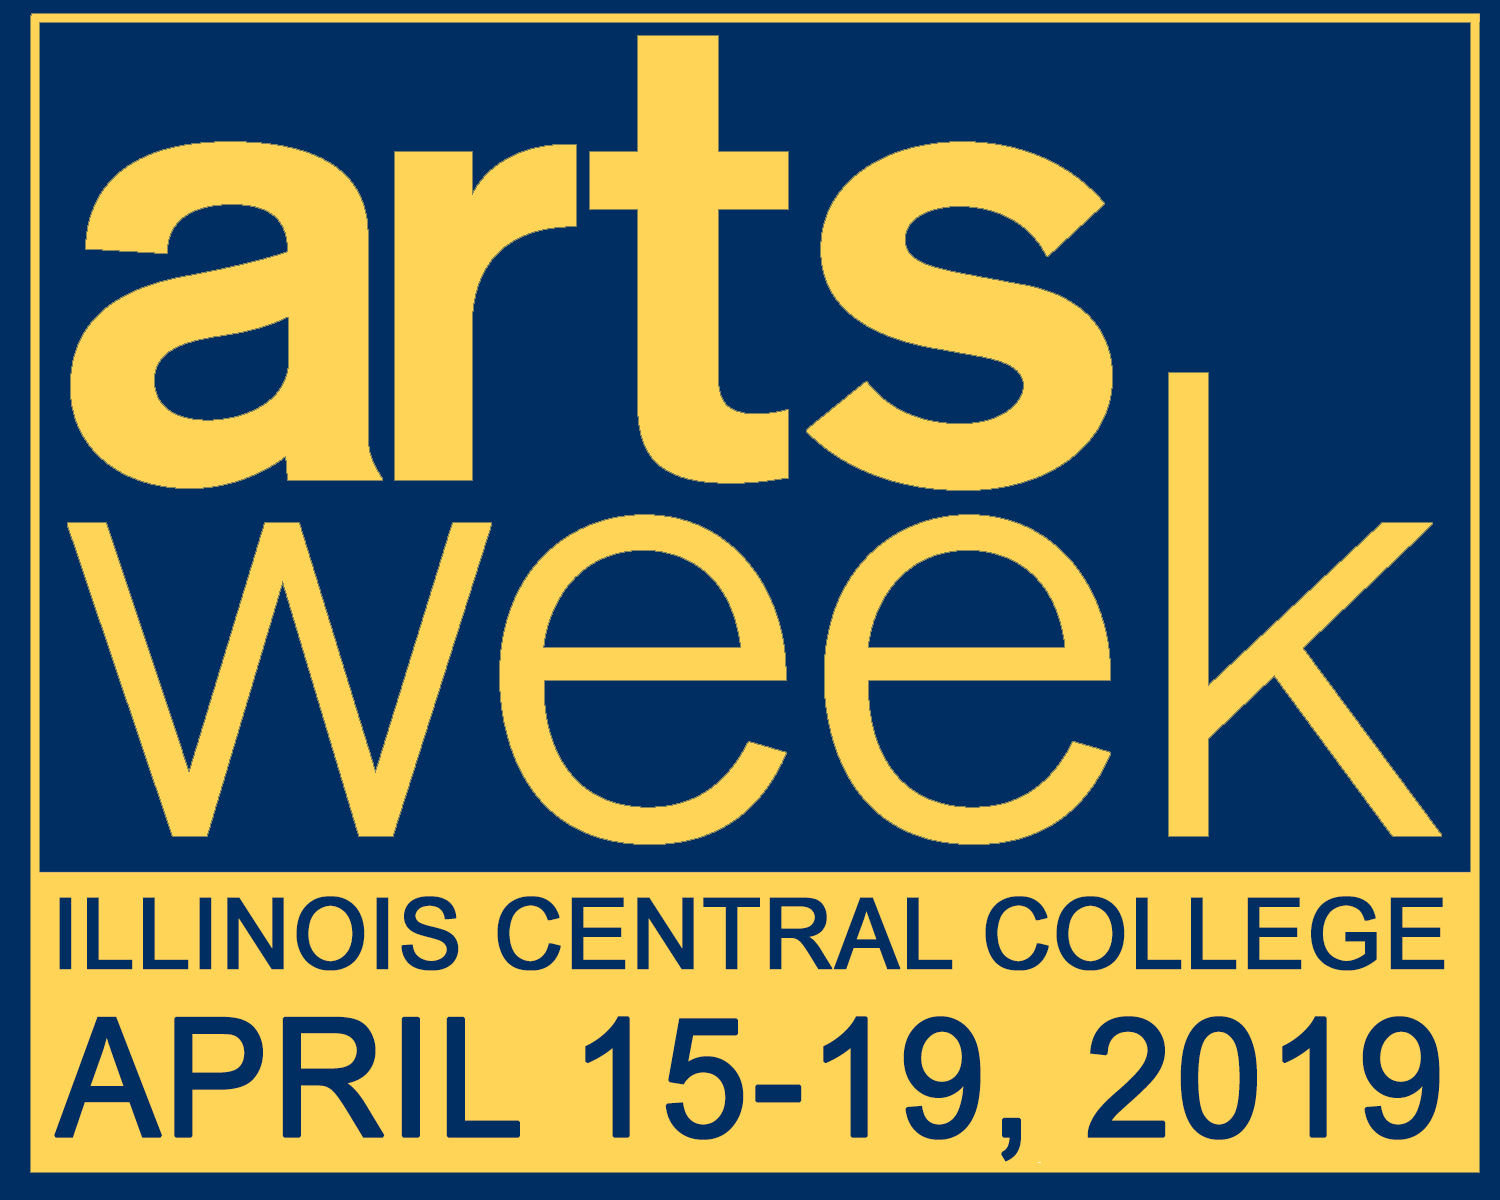 ICC Arts Week 2019 -- April 15-19, 2019